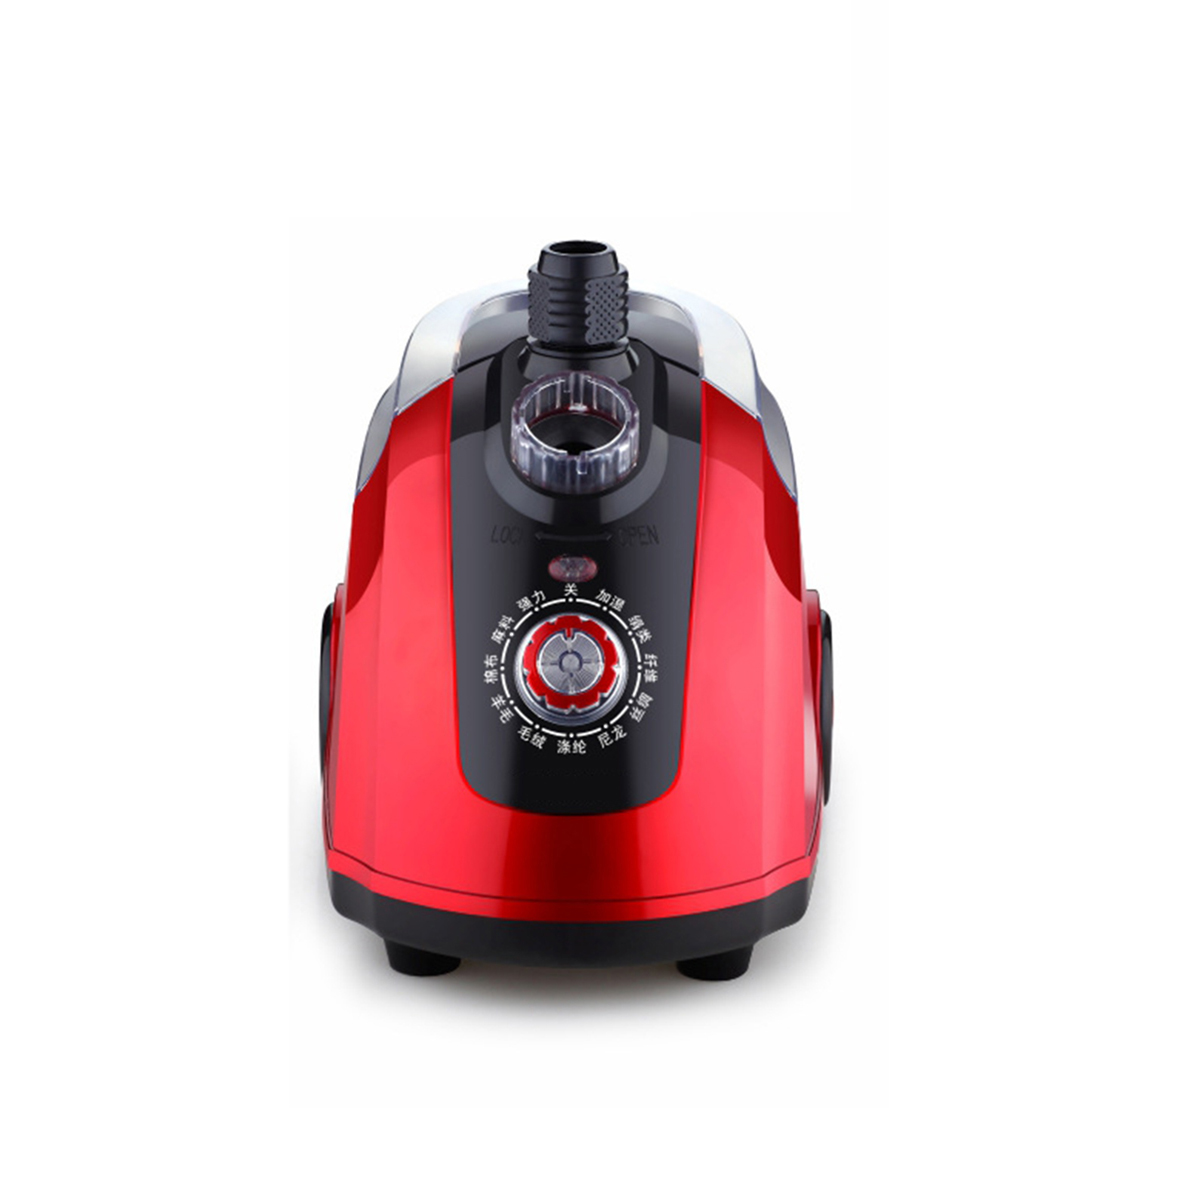 1800W 1.8L Hanging Vertical Steam Iron Household Garment Clothing Store Ironing Machine